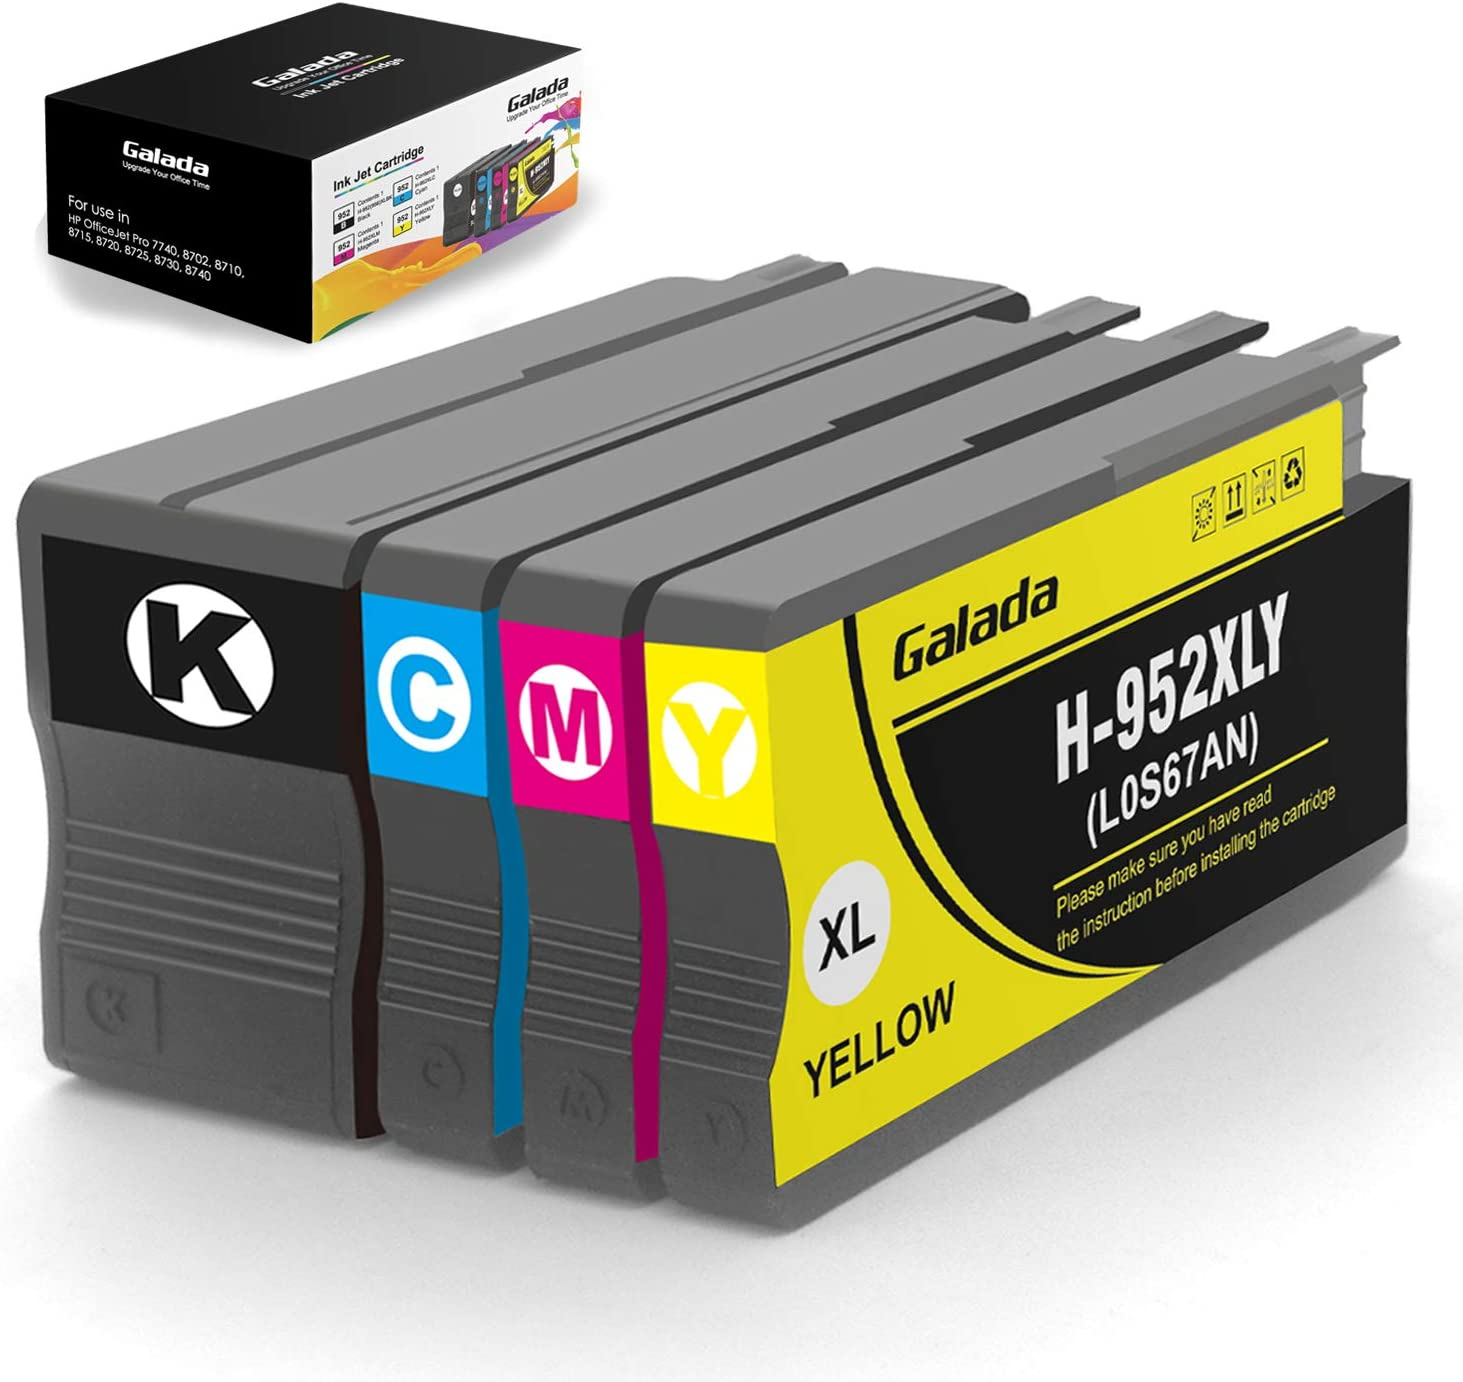 Galada Compatible Ink Cartridges Replacement for HP 952xl 952 XL Ink Cartridges to use with OfficeJet Pro 8710 8720 8702 8715 8740 7740 7720 Printers(1Black,1Cyan,1Magenta,1Yellow,4-Pack)